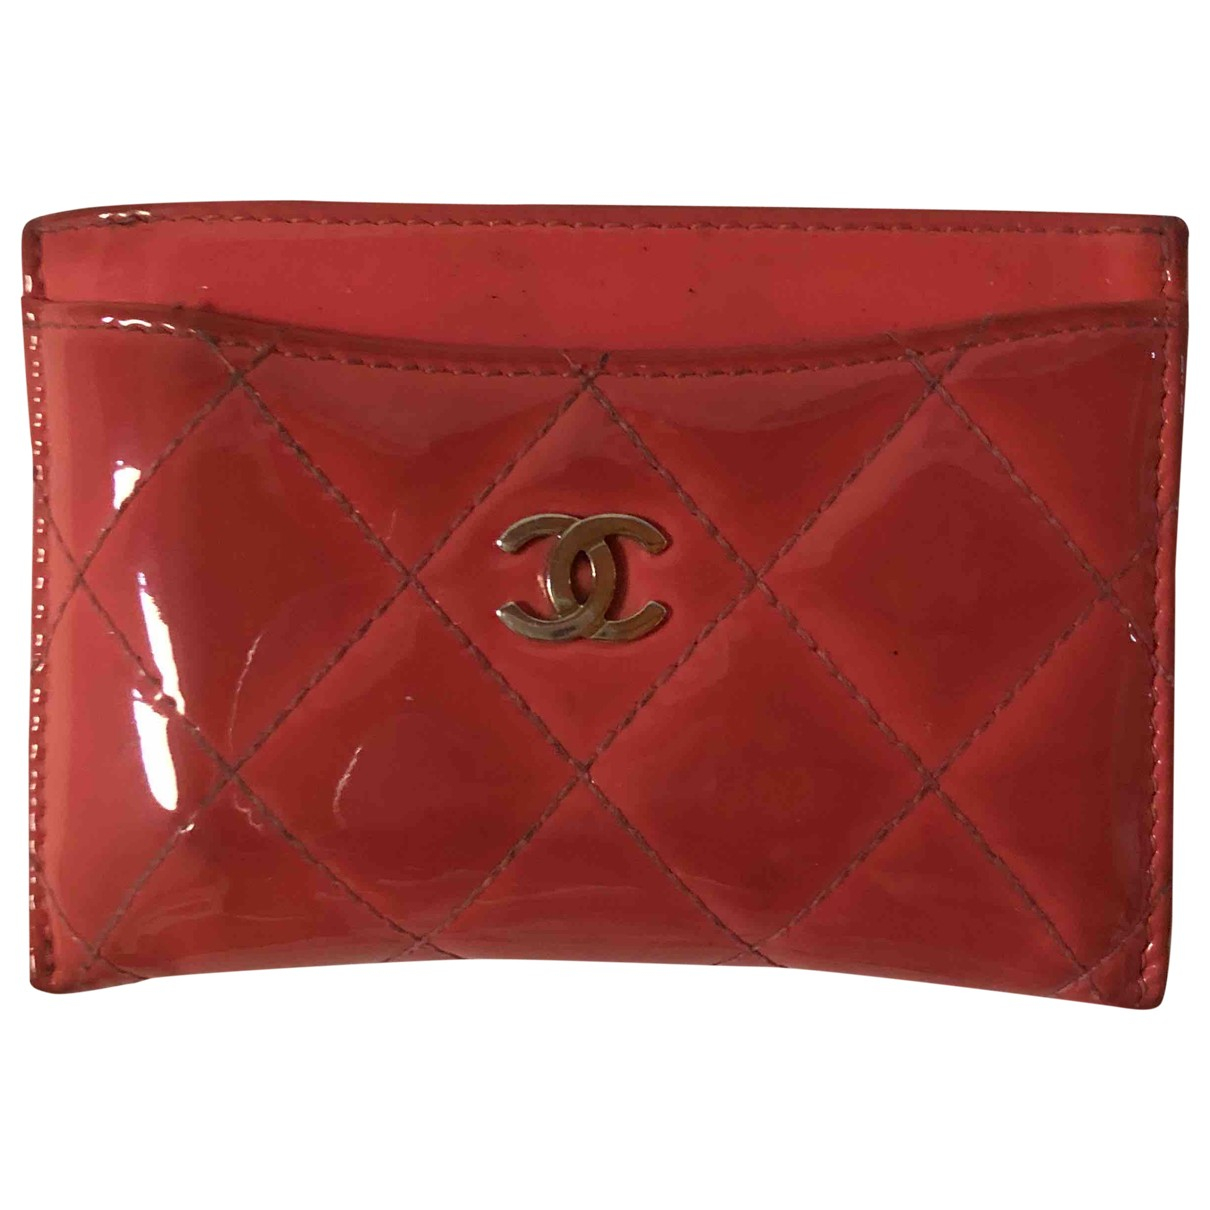 Chanel Timeless/Classique Pink Patent leather Purses, wallet & cases for Women \N